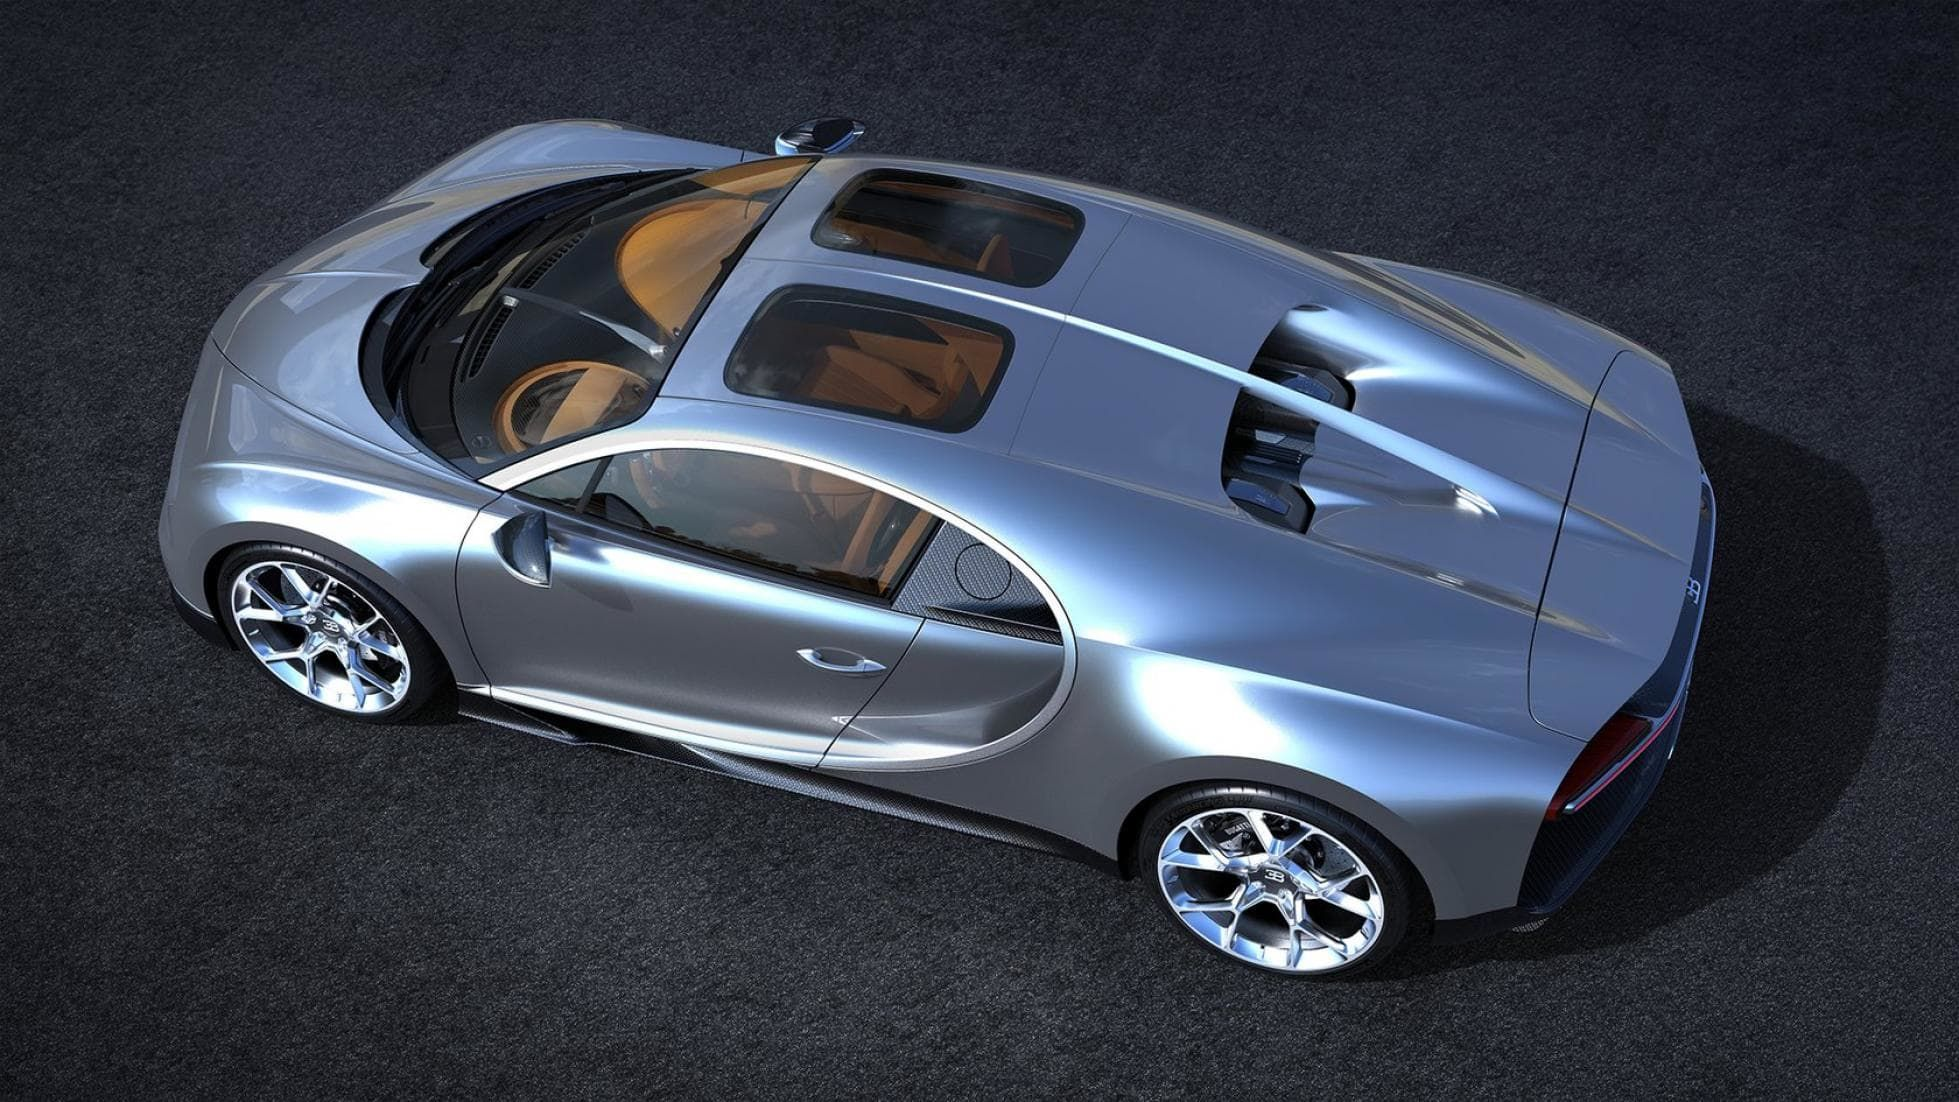 The Bugatti Chiron Now Gets The World S Poshest Sunroof Bugatti Chiron Bugatti Car Wheels Rims